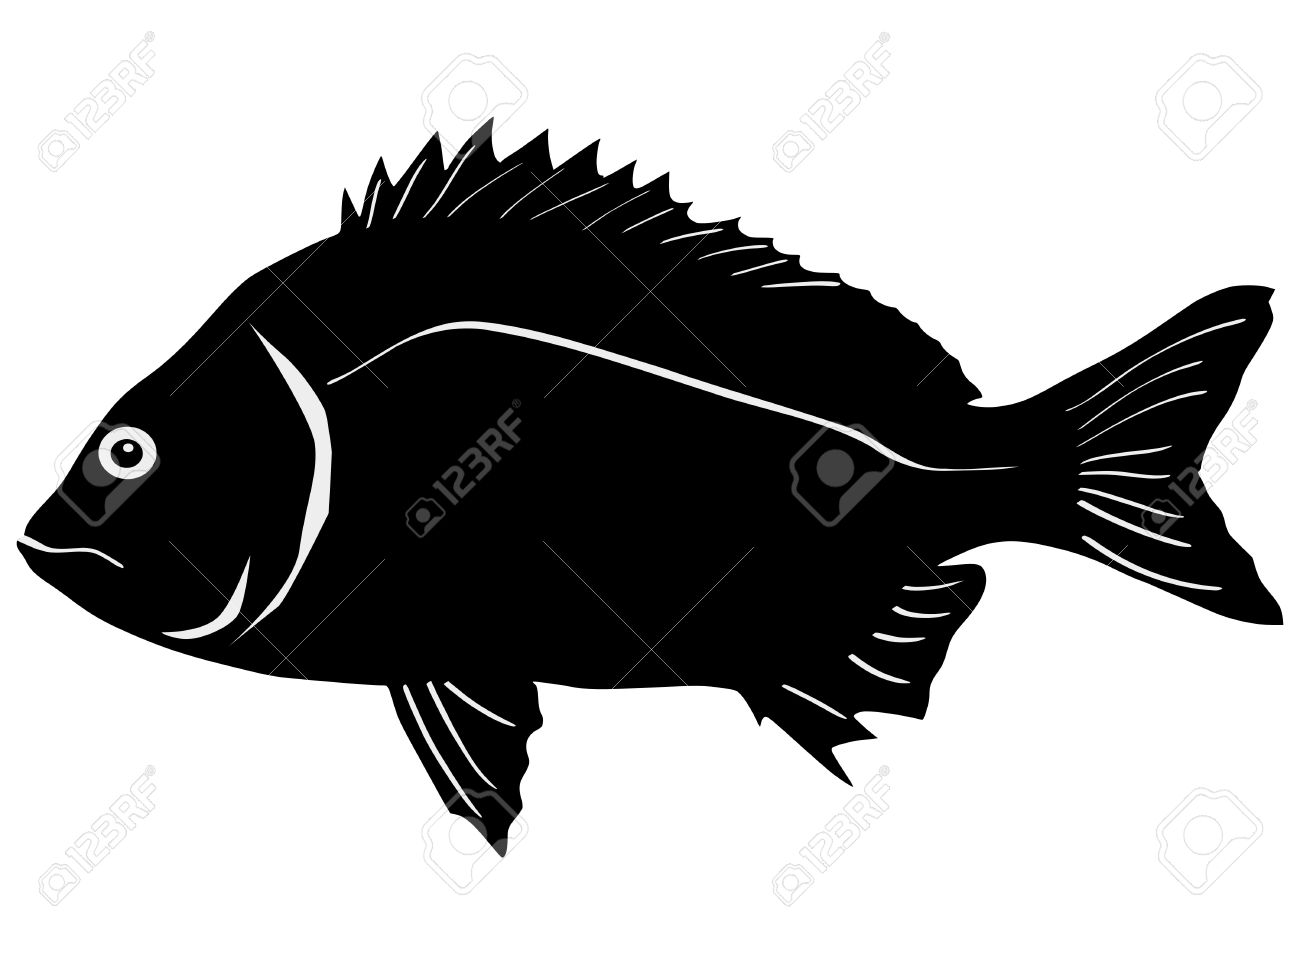 Bream clipart #6, Download drawings